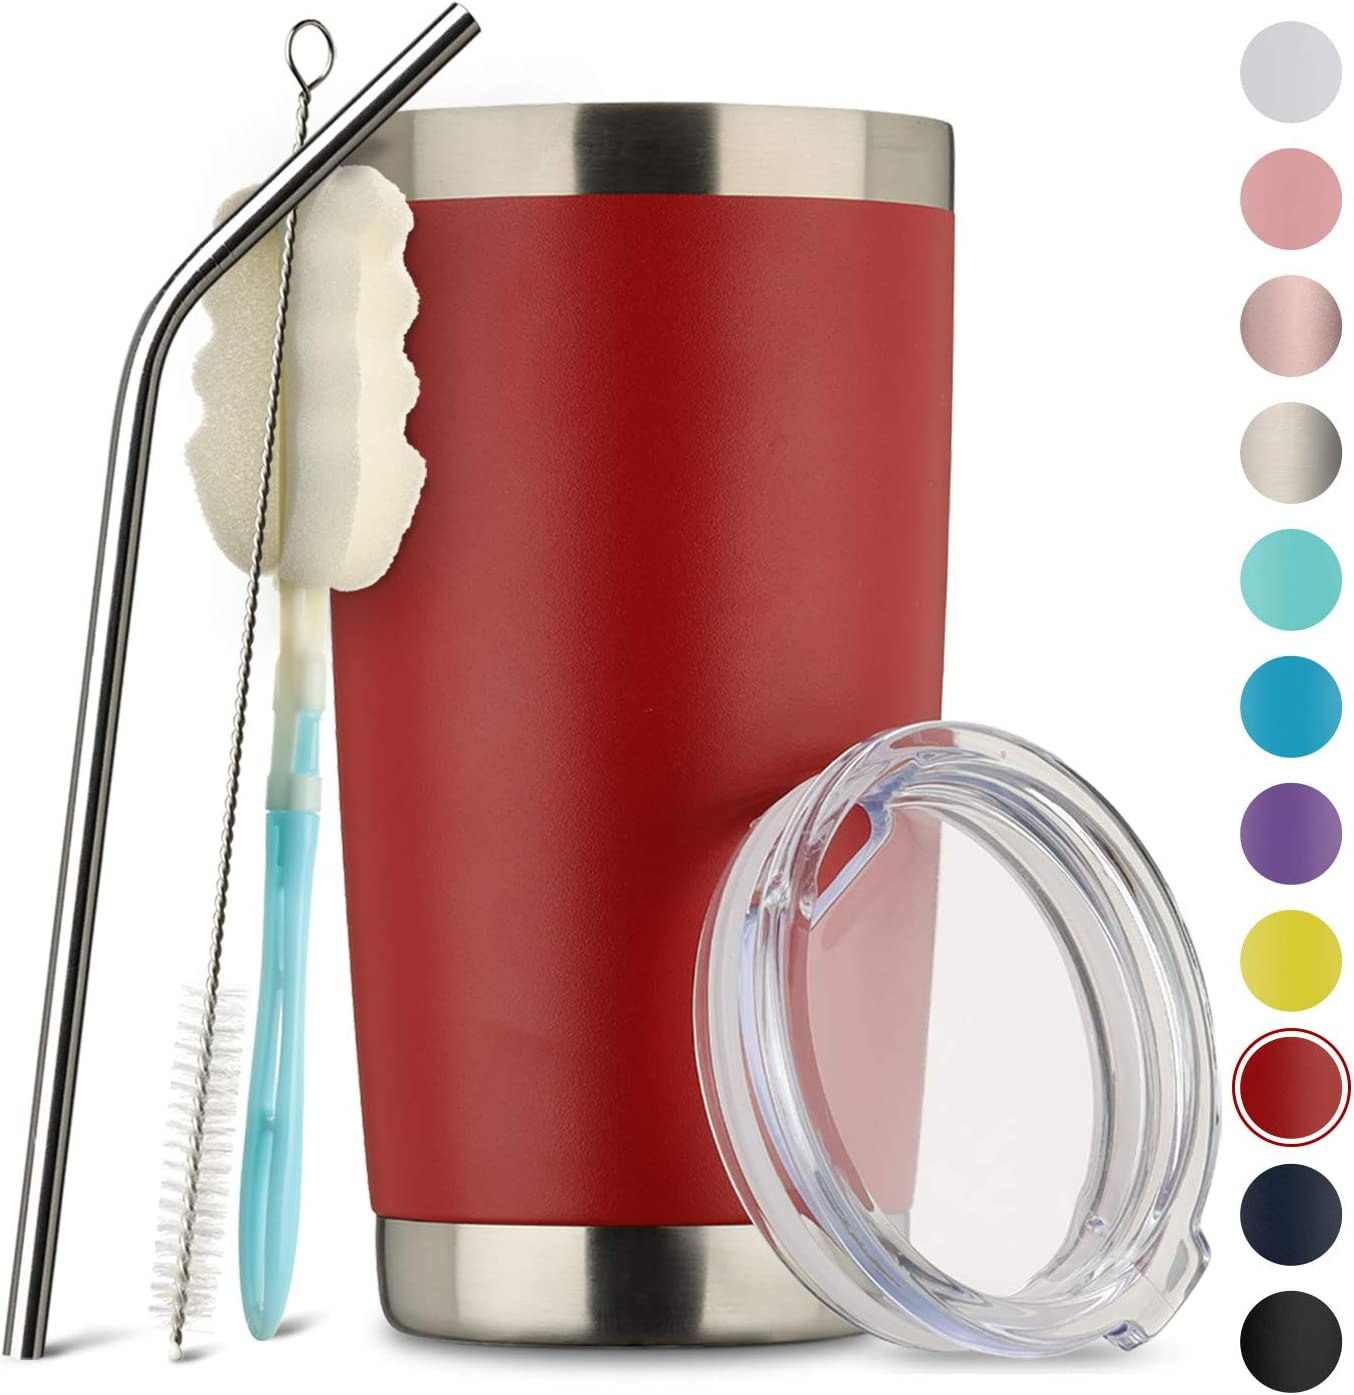 MUCHENGHY 20oz Tumbler Double Wall Stainless Steel Vacuum Insulated Travel Mug with Lid, Insulated Coffee Cup Travel Mug, 1 Straws,2 brush (Red, 1)